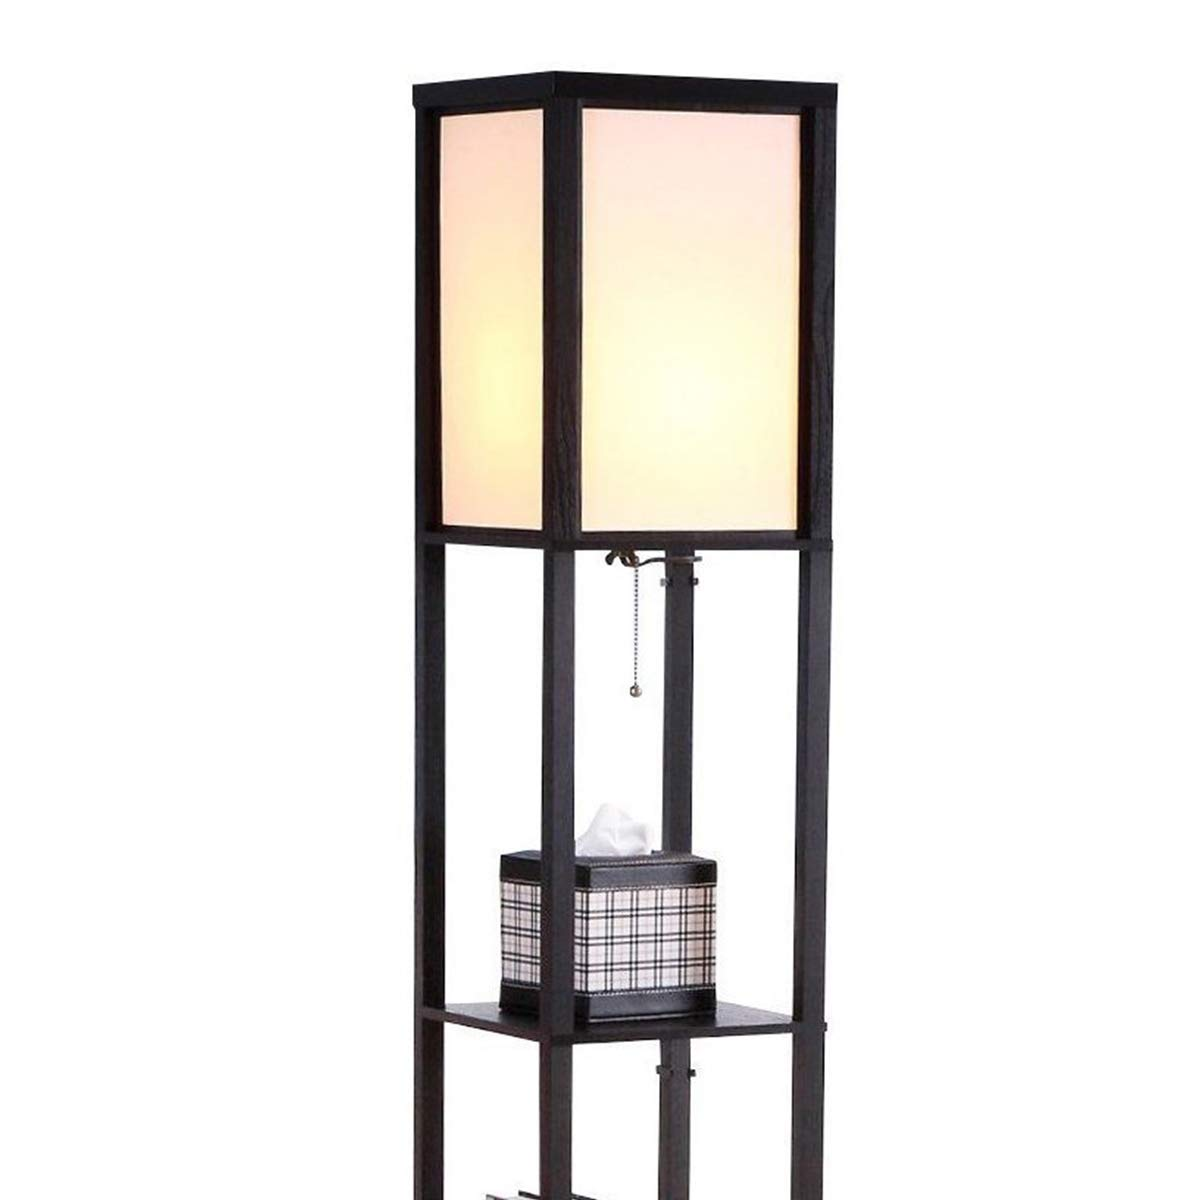 Brightech Maxwell - LED Shelf Floor Lamp - Modern Standing Light for Living Rooms & Bedrooms - Asian Wooden Frame with Open Box Display Shelves - Black by Brightech (Image #2)